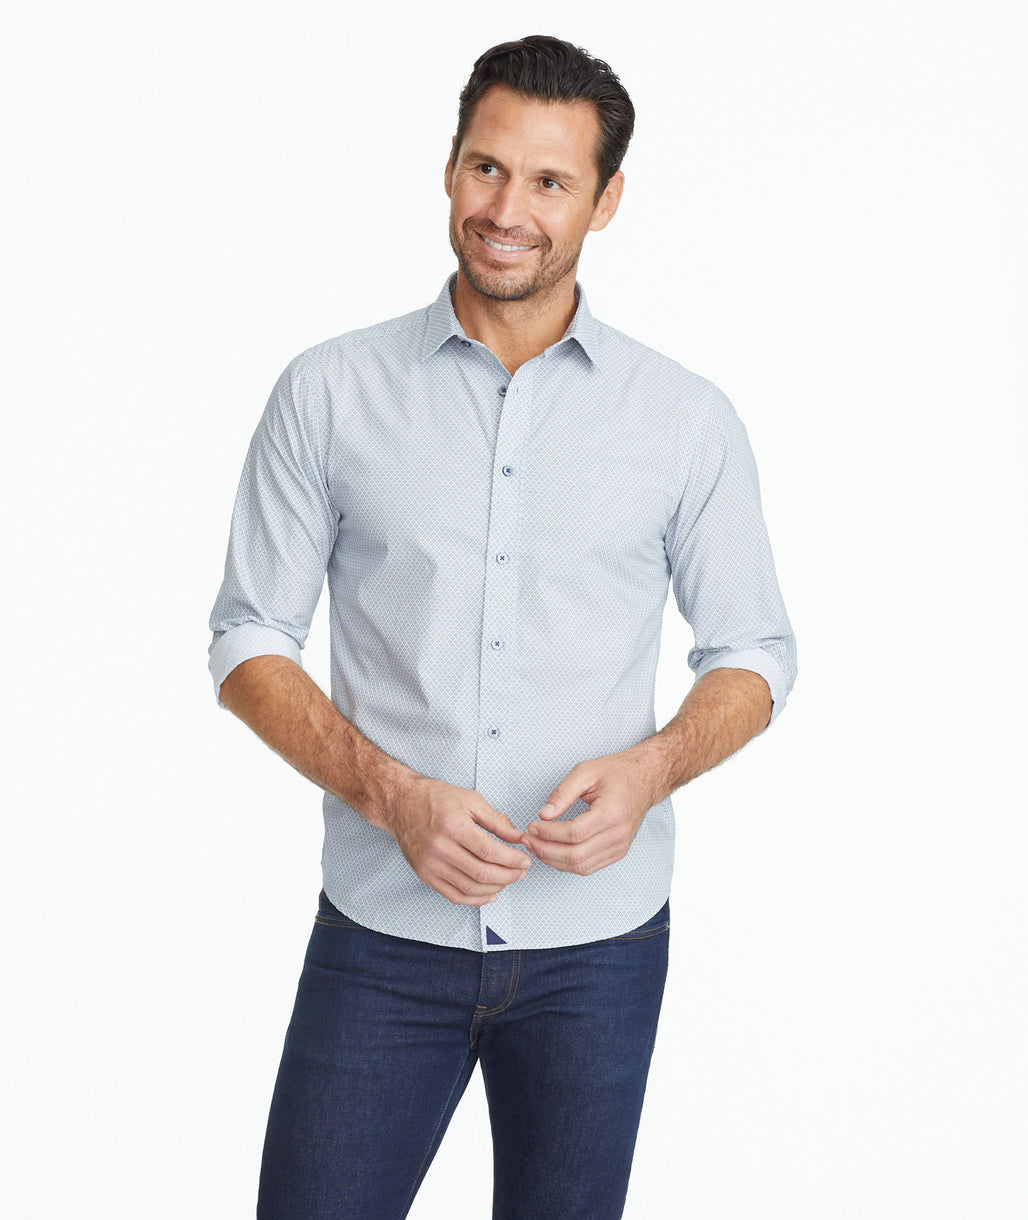 Model wearing a Classic Cotton Valdonica Shirt